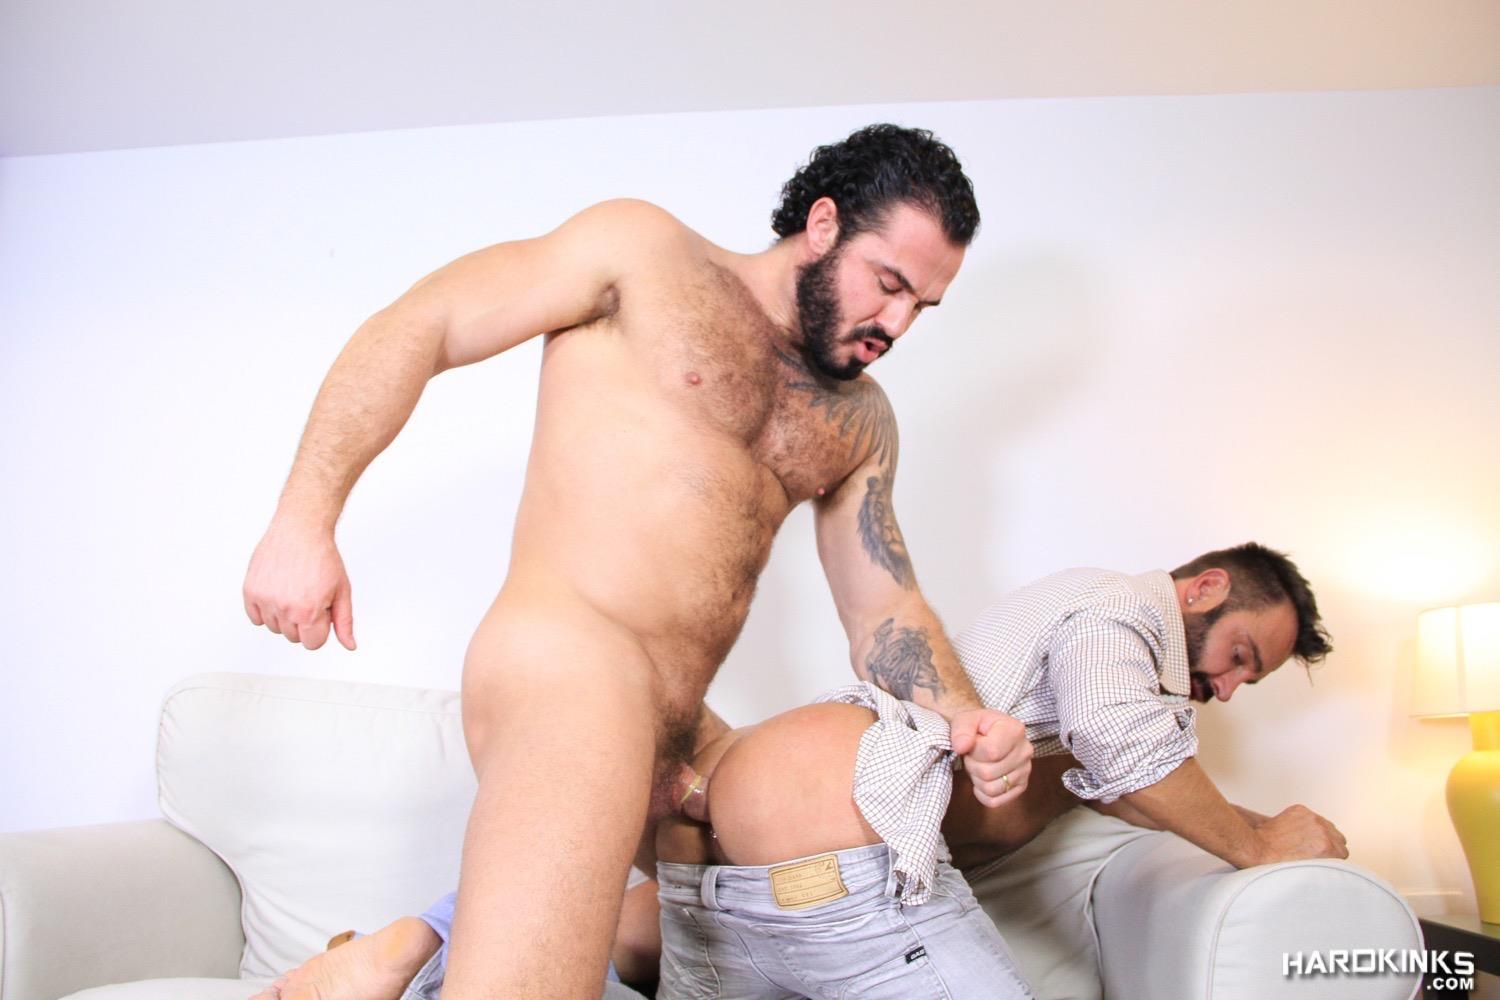 Hardkinks Jessy Ares and Martin Mazza Hairy Alpha Male Amateur Gay Porn 41